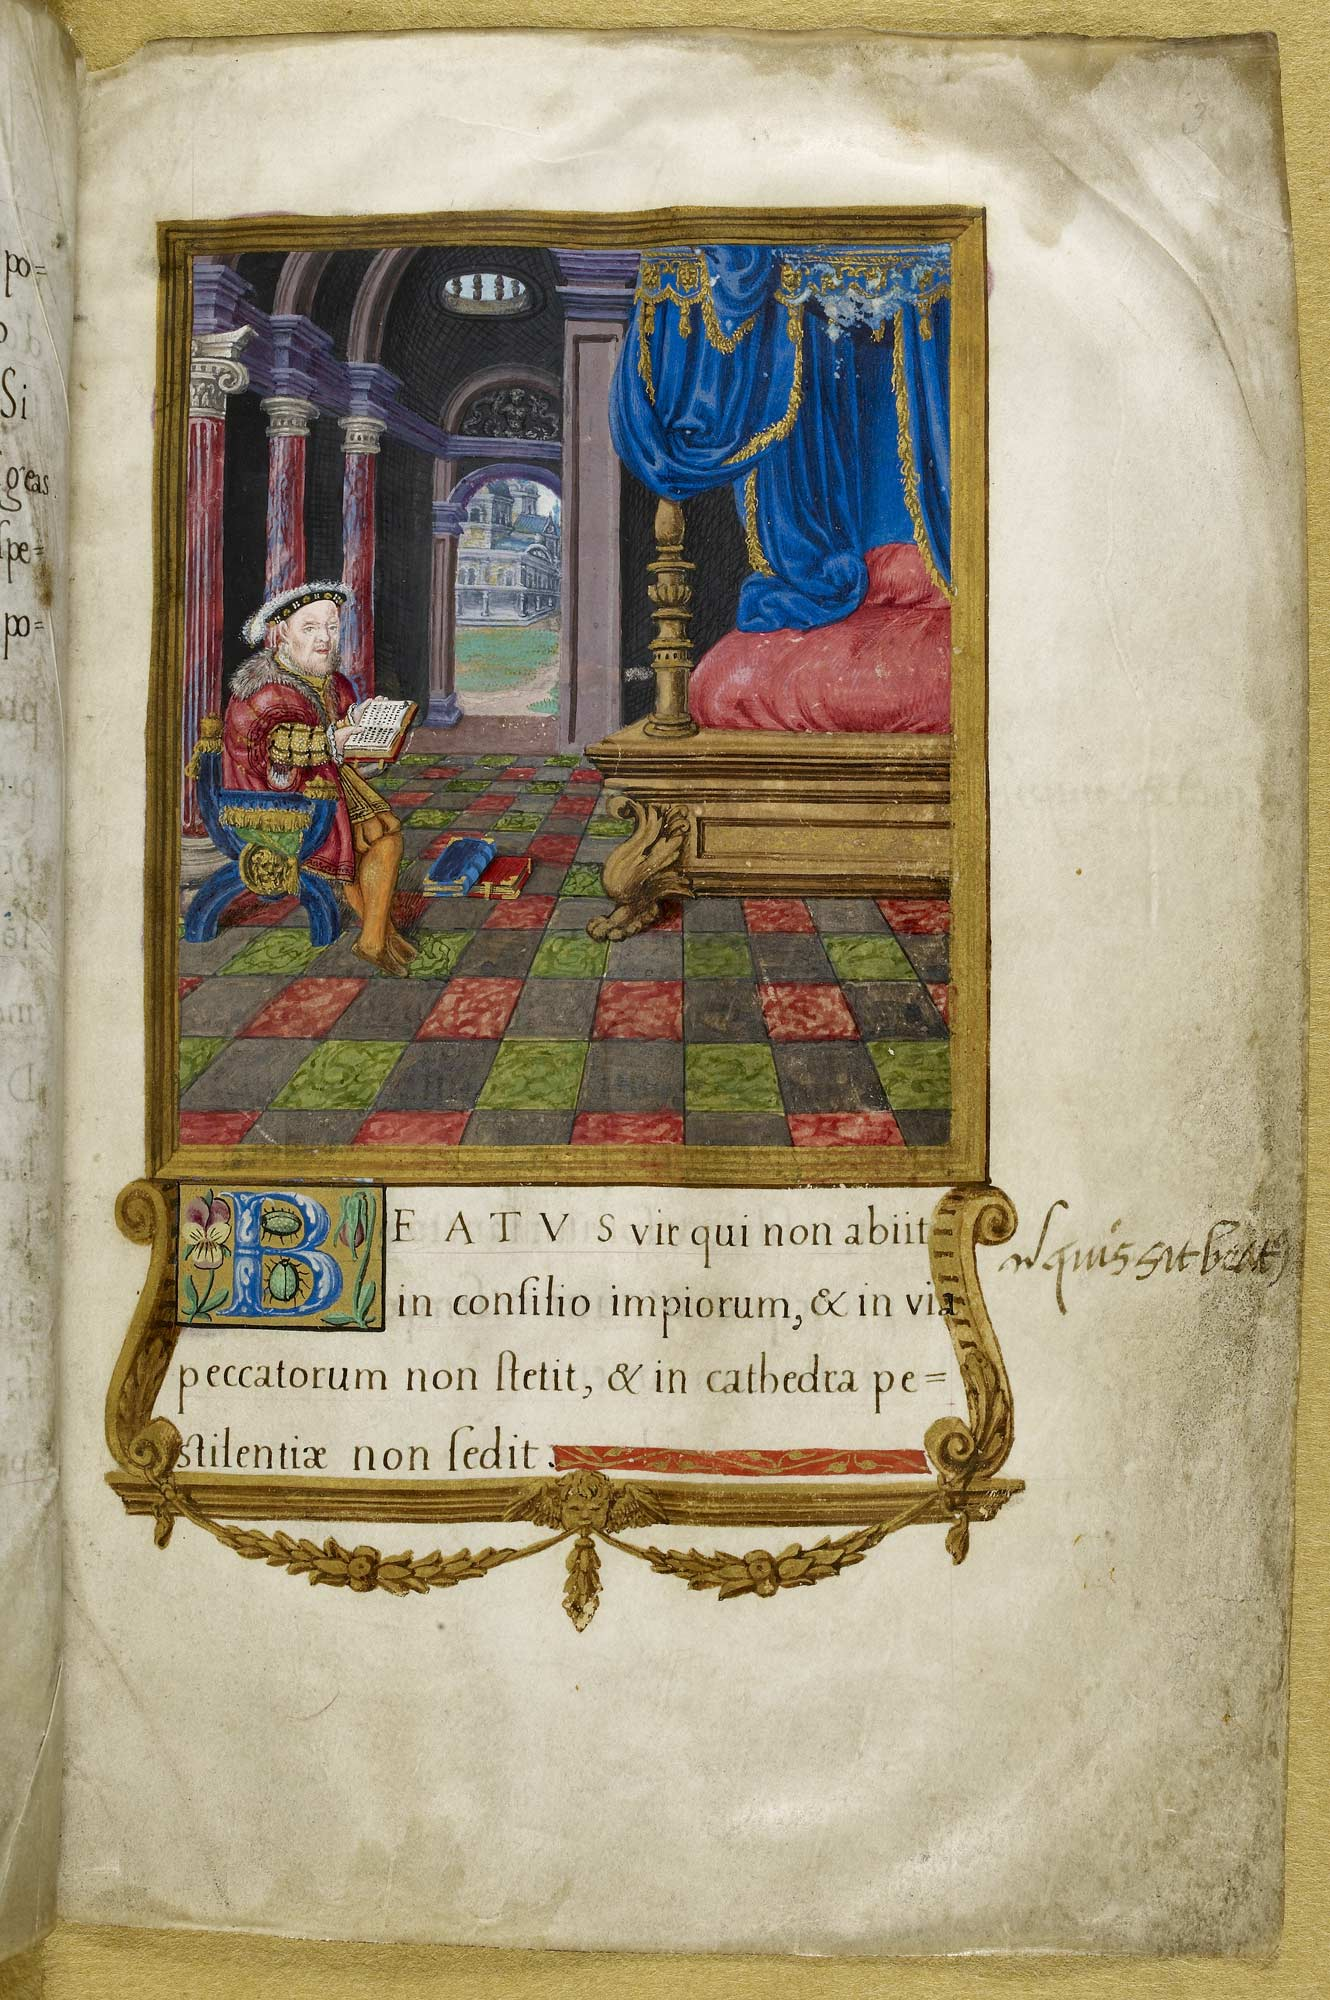 Henry Vlll Psalter. The illustration shows King Henry Vlll siting in his ante-chamber reading his Psalms, f.3